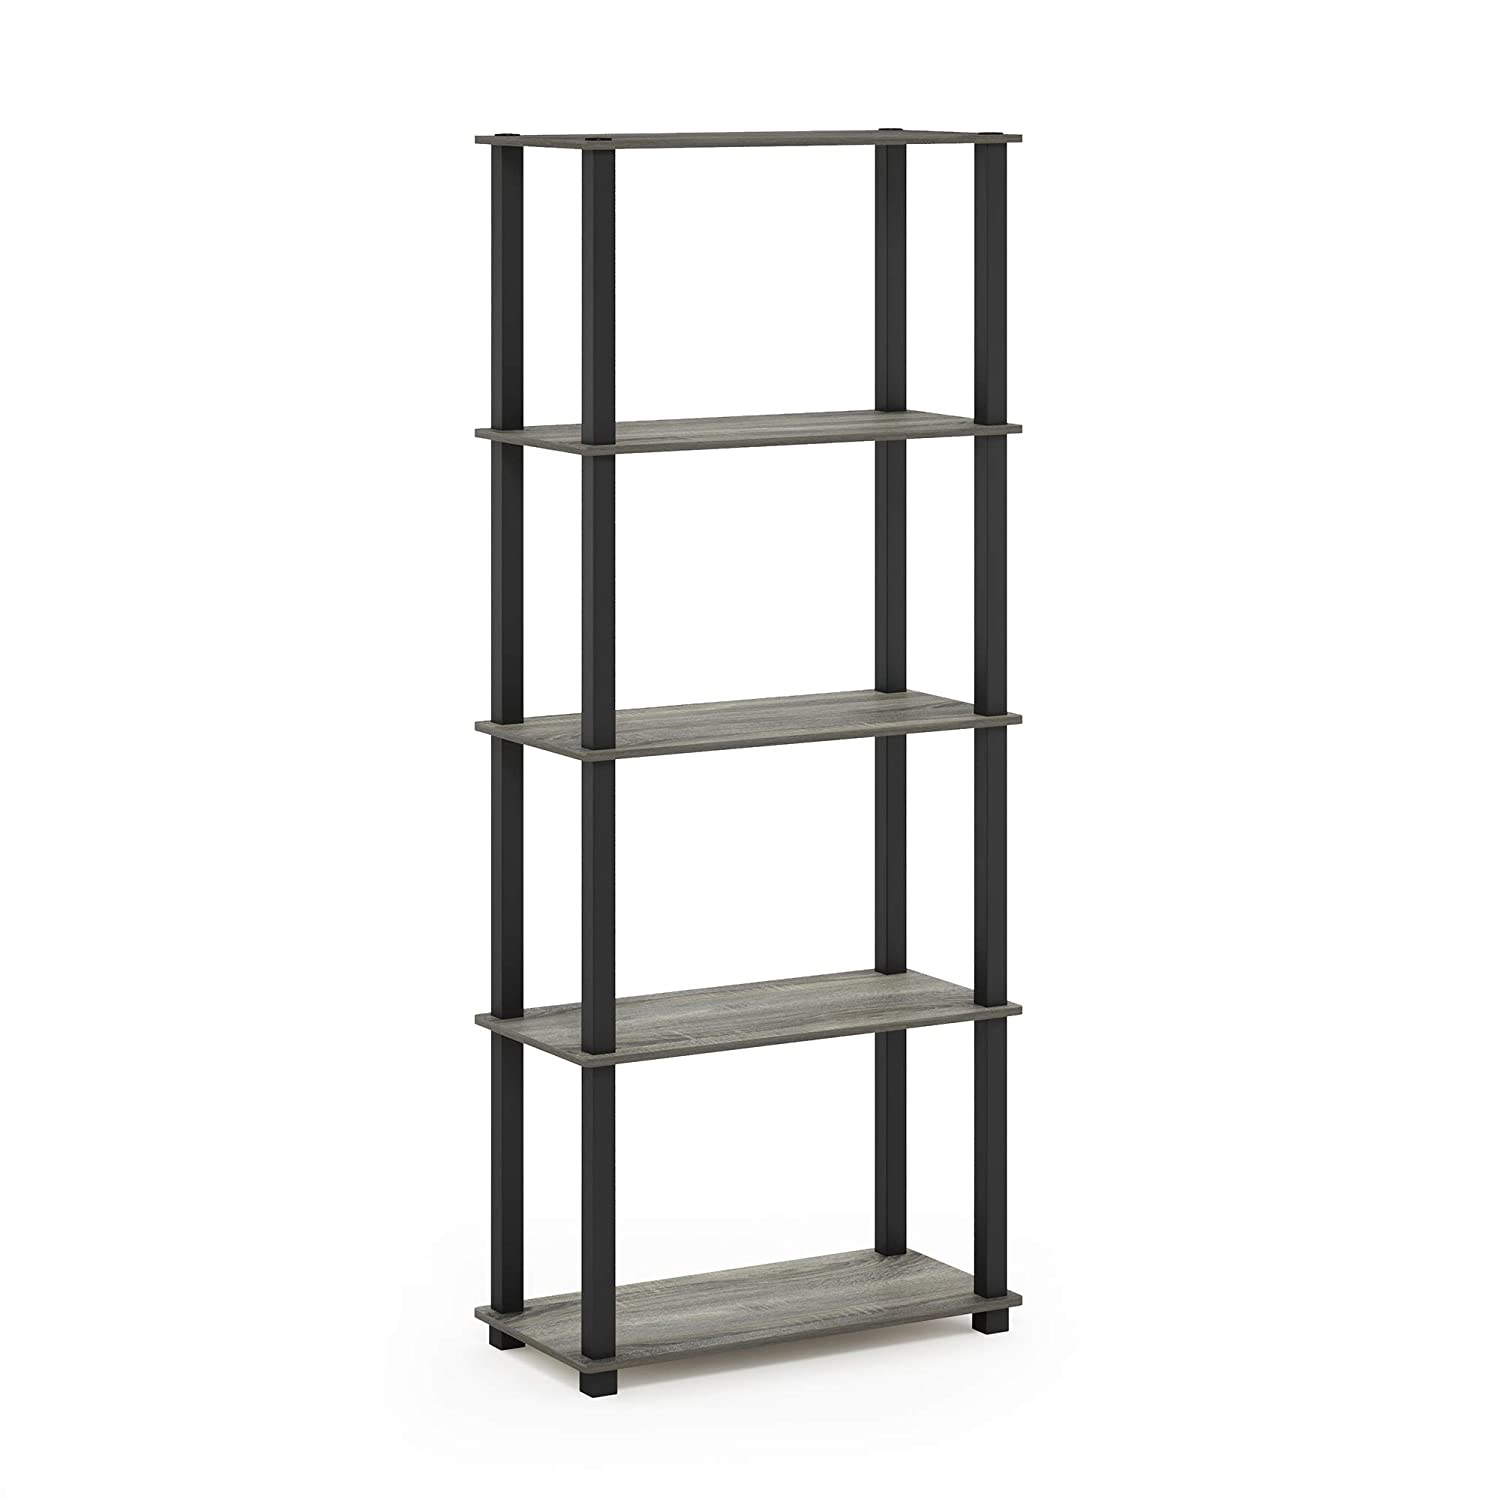 Furinno Turn-S 5-Tier Multipurpose Shelf Display Rack with Square Tubes, French Oak Grey/Black